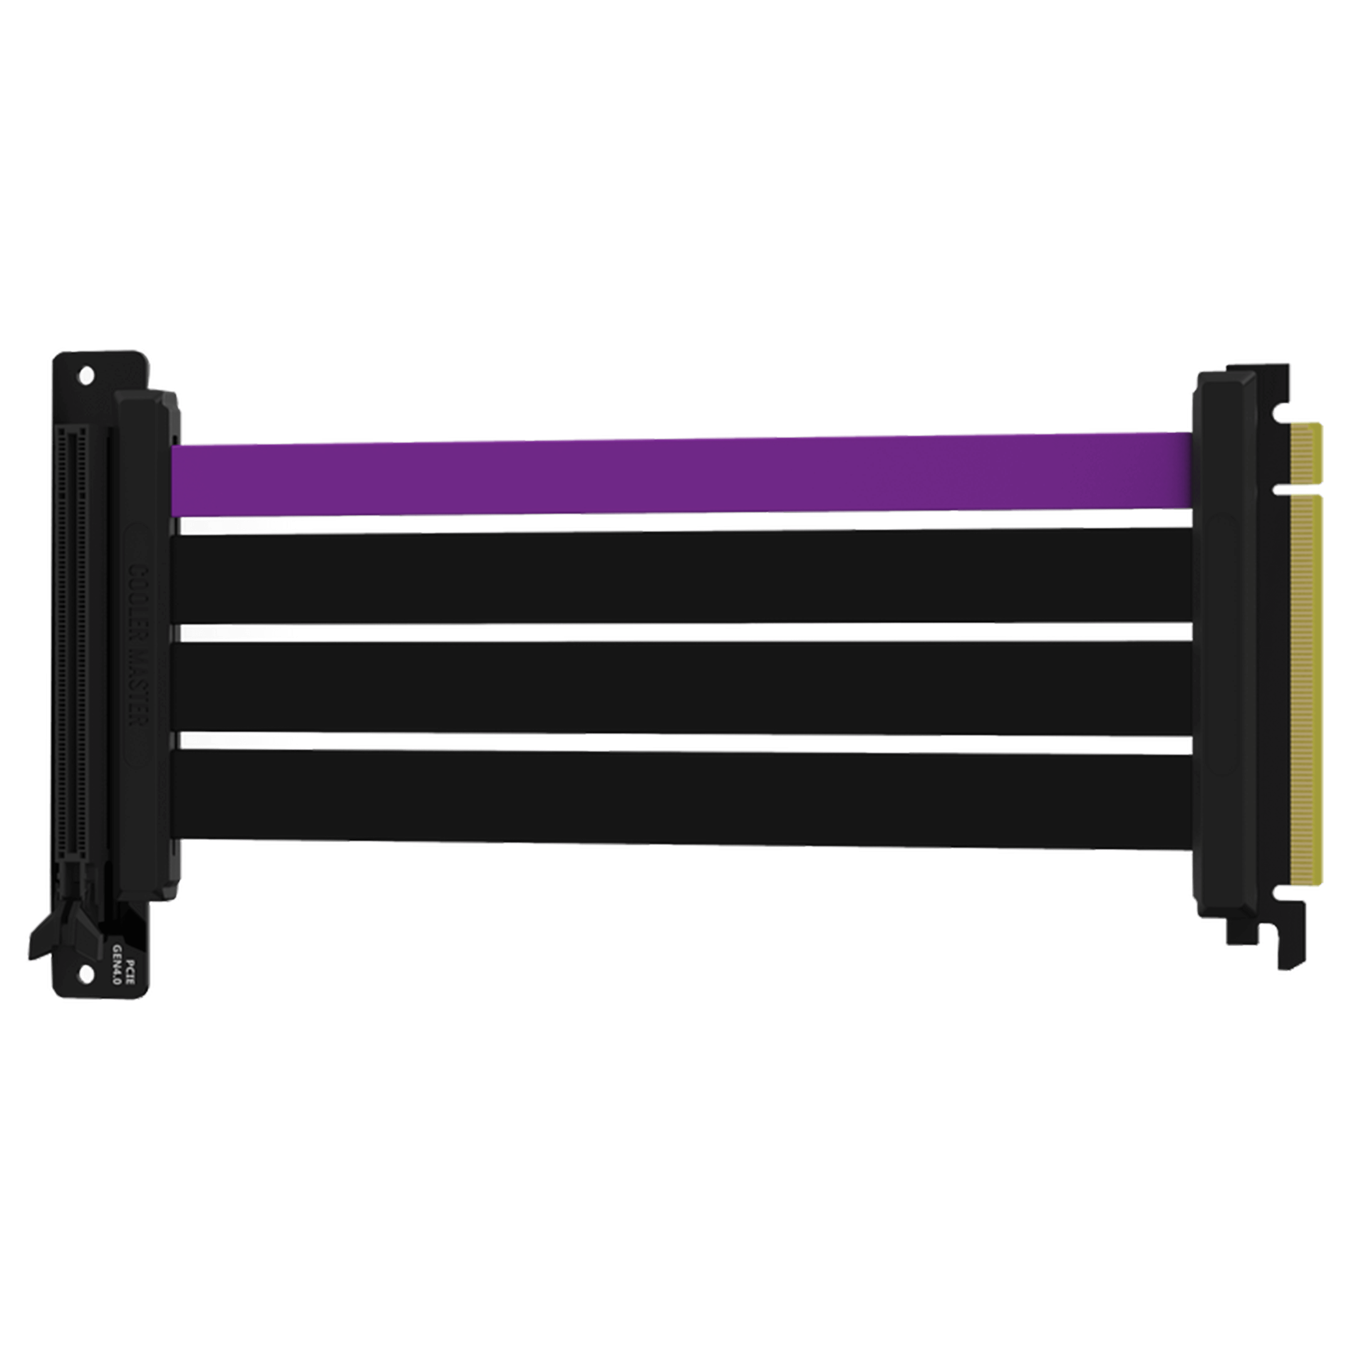 The Cooler Master MasterAccessory PCIe 4.0 Riser Cable with three matte black cables and a single purple accent cable in a horizontal position.